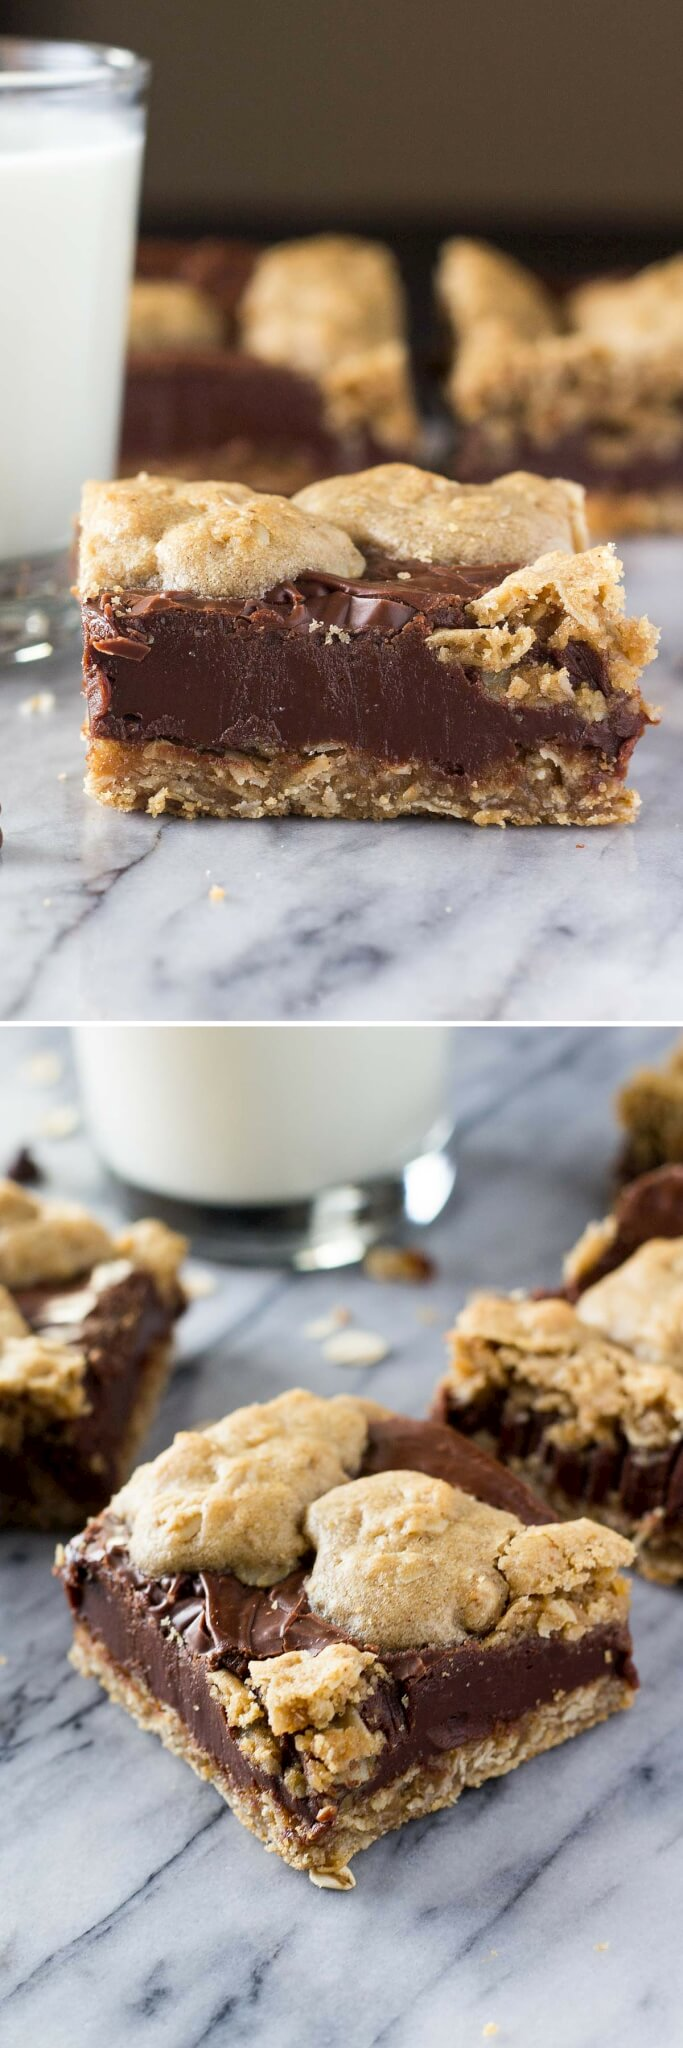 Chewy oatmeal cookie and creamy chocolate come together in these Oatmeal Fudge Bars. So easy to make, and so much better than the Starbucks version!